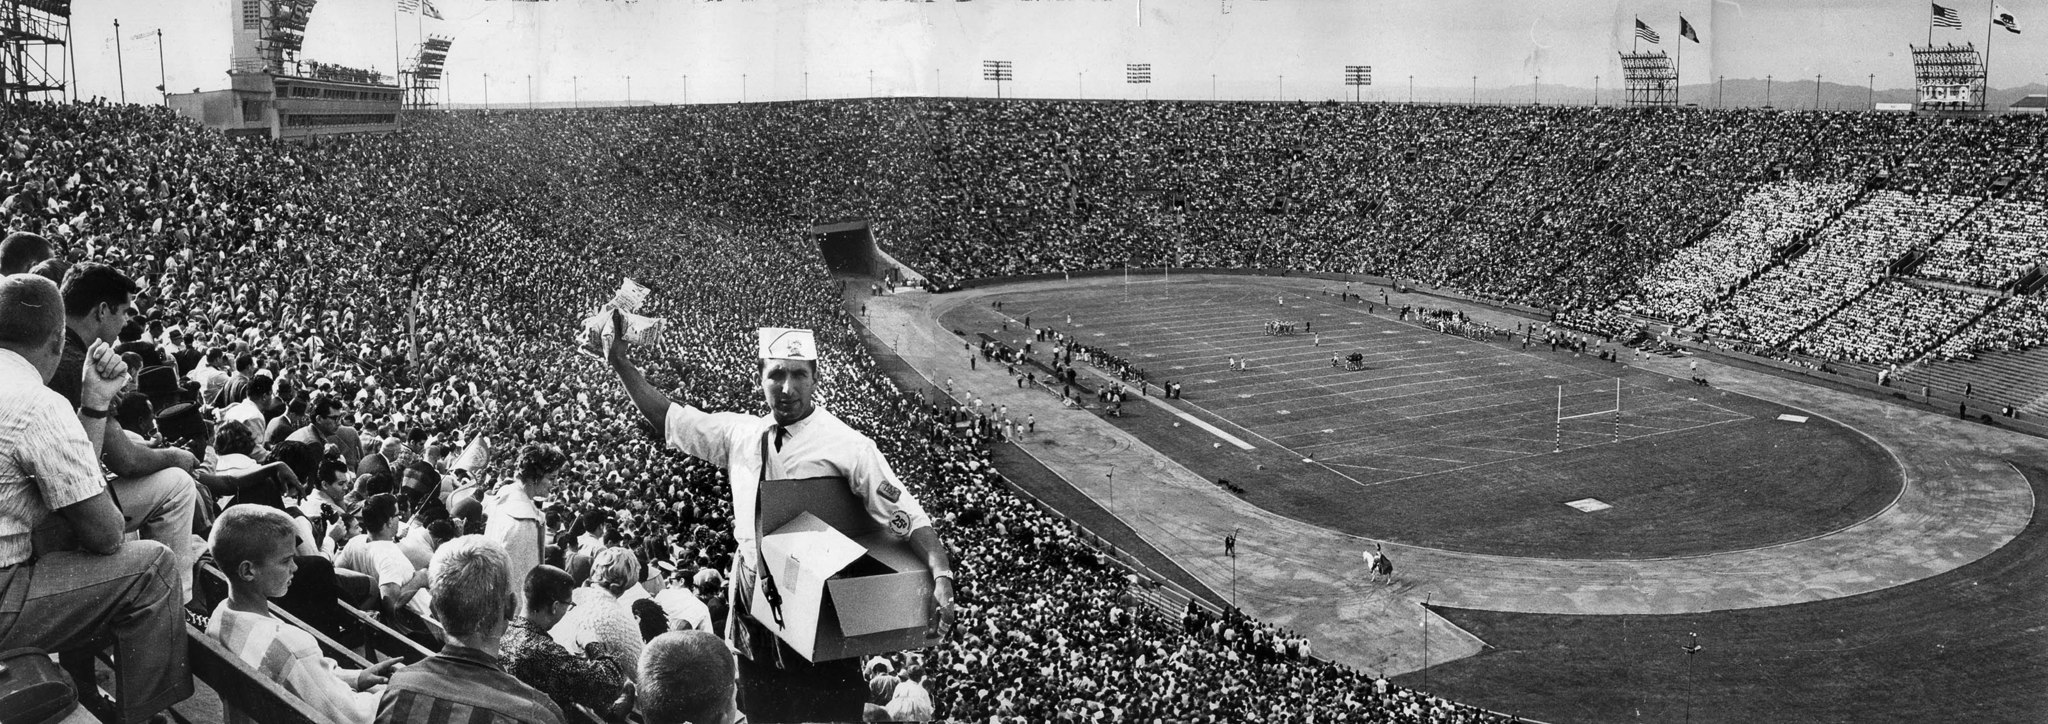 Nov. 24, 1962: Crowd of 86,740 attend UCLA-USC football game at the Los Angeles Memorial Coliseum. U